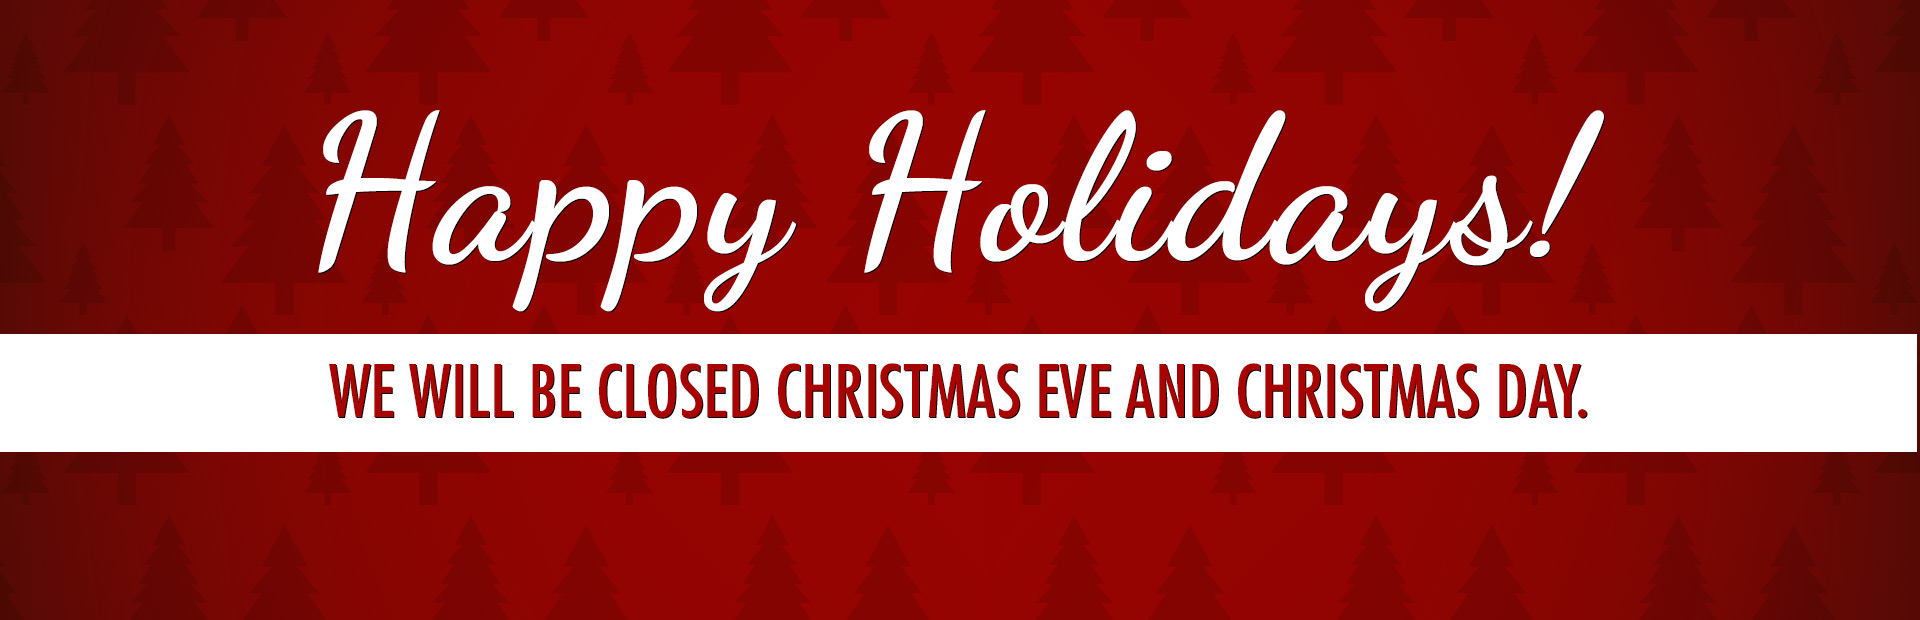 Happy Holidays: We will be closed Christmas Eve and Christmas Day.